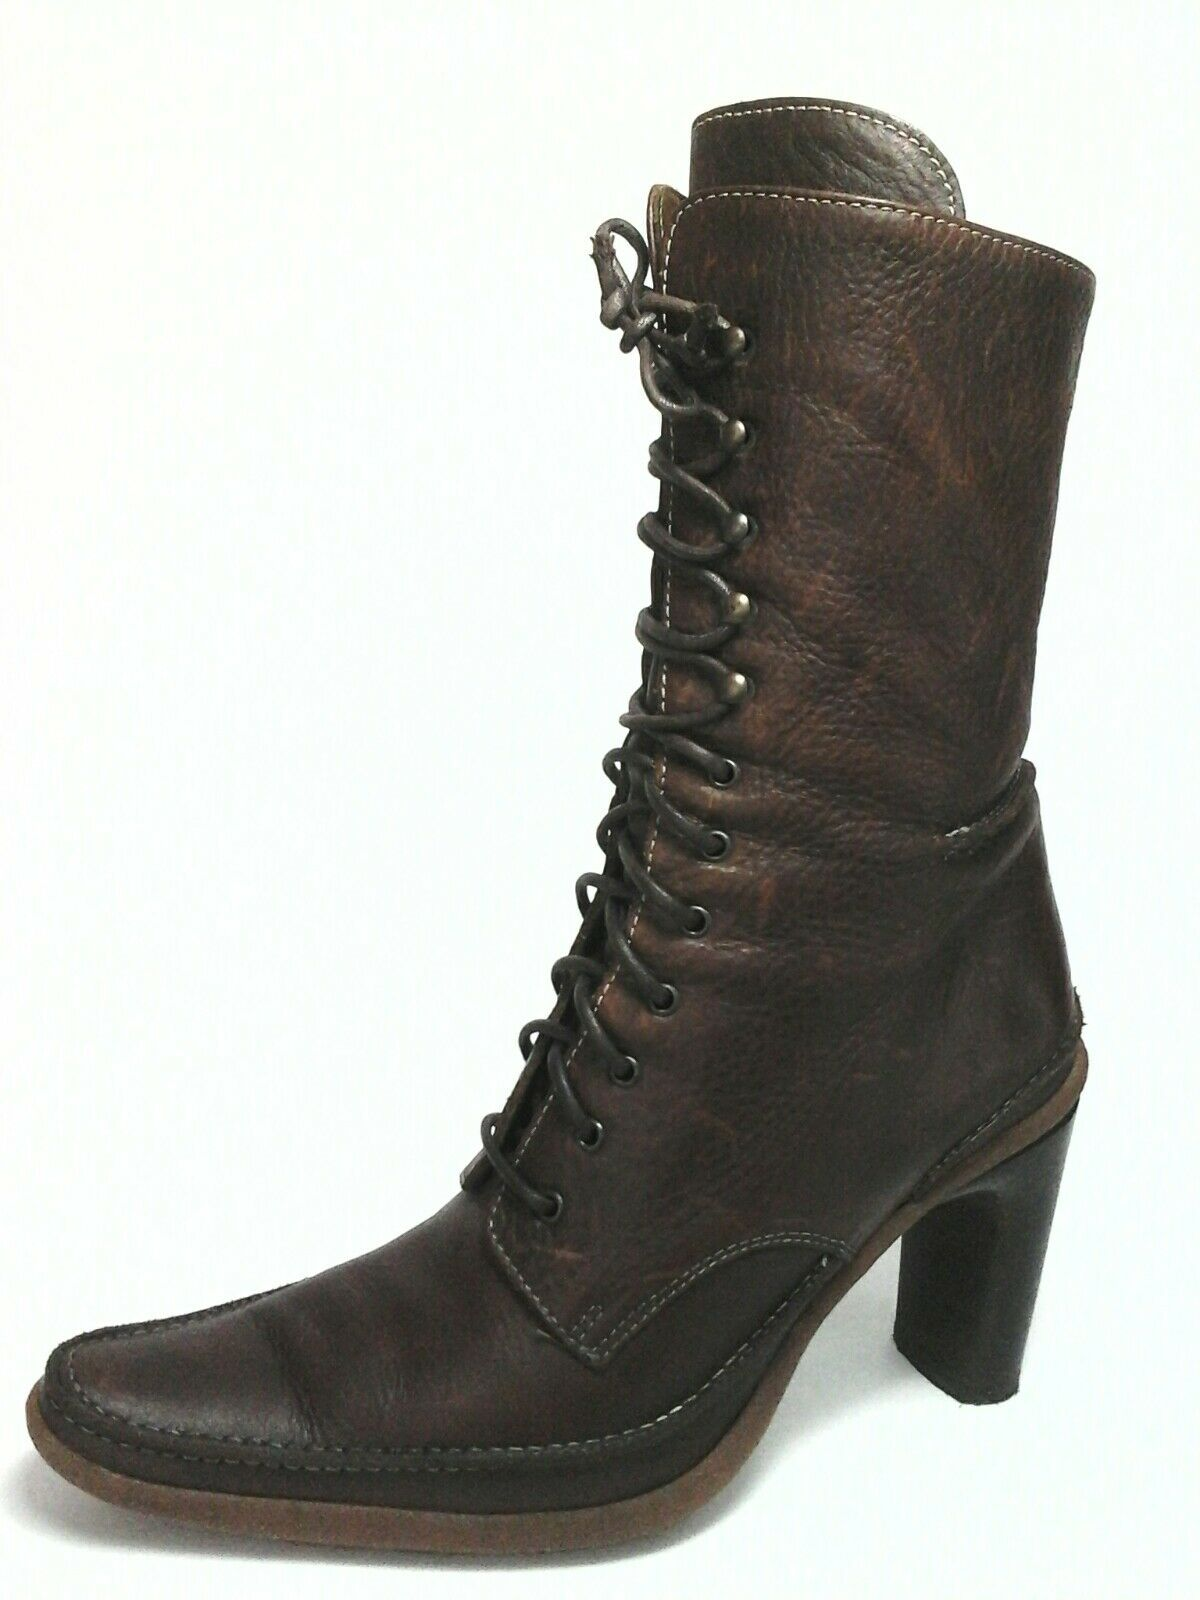 VITTORIO PIANI Boots Brown Leather Victorian Heels Lace up Womens US 8.5/9